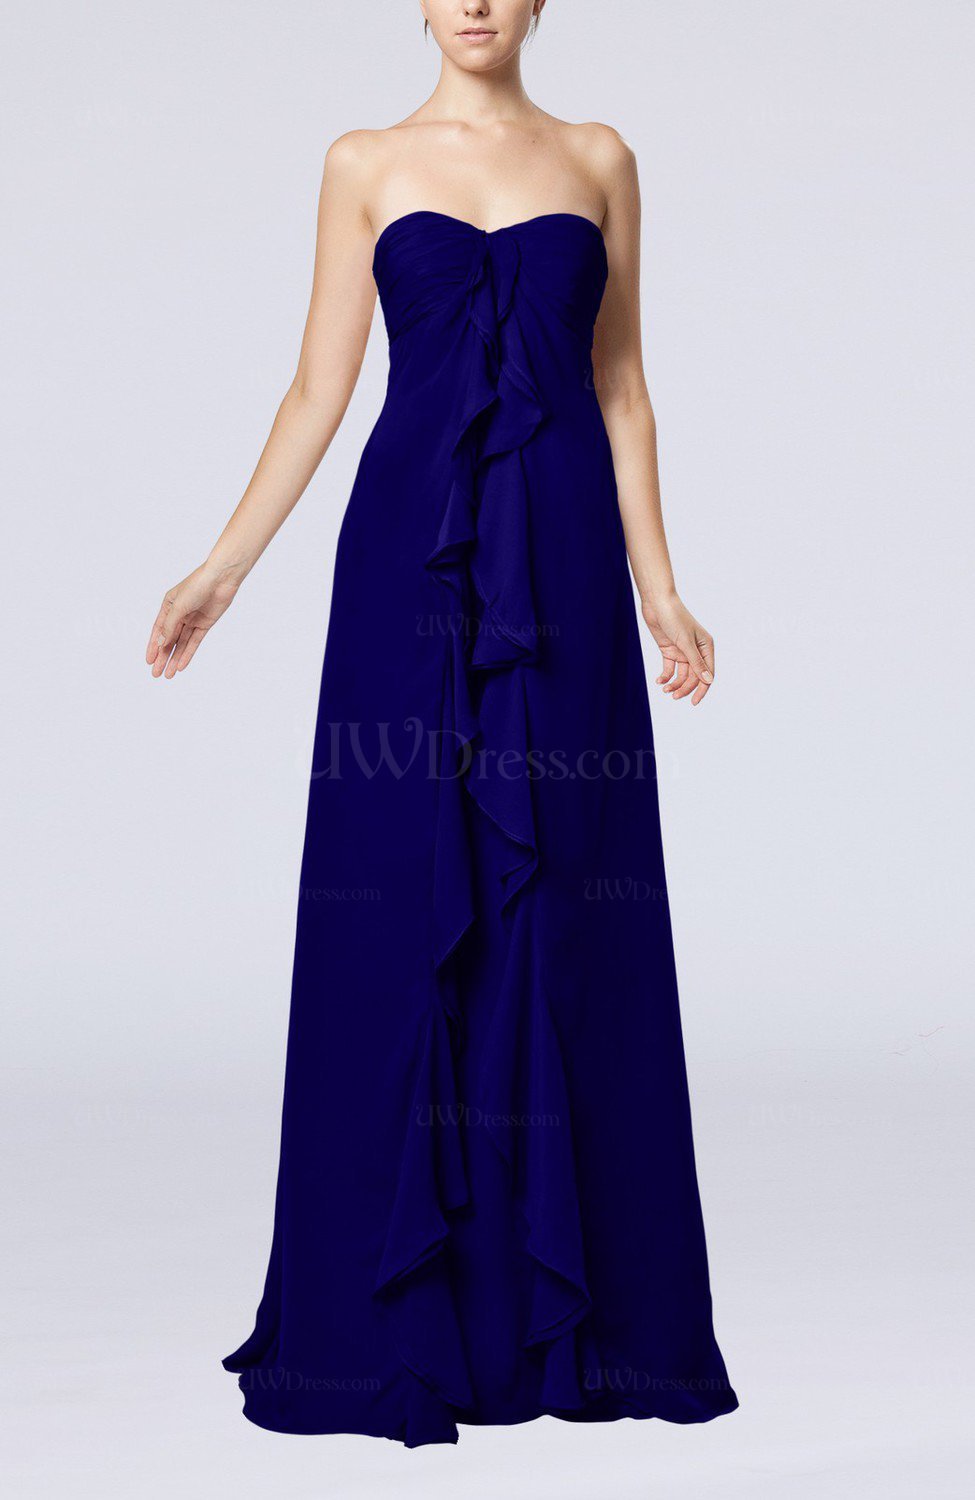 Electric Blue Wedding Guest Dresses : Blue simple empire sweetheart zip up chiffon sweep train wedding guest